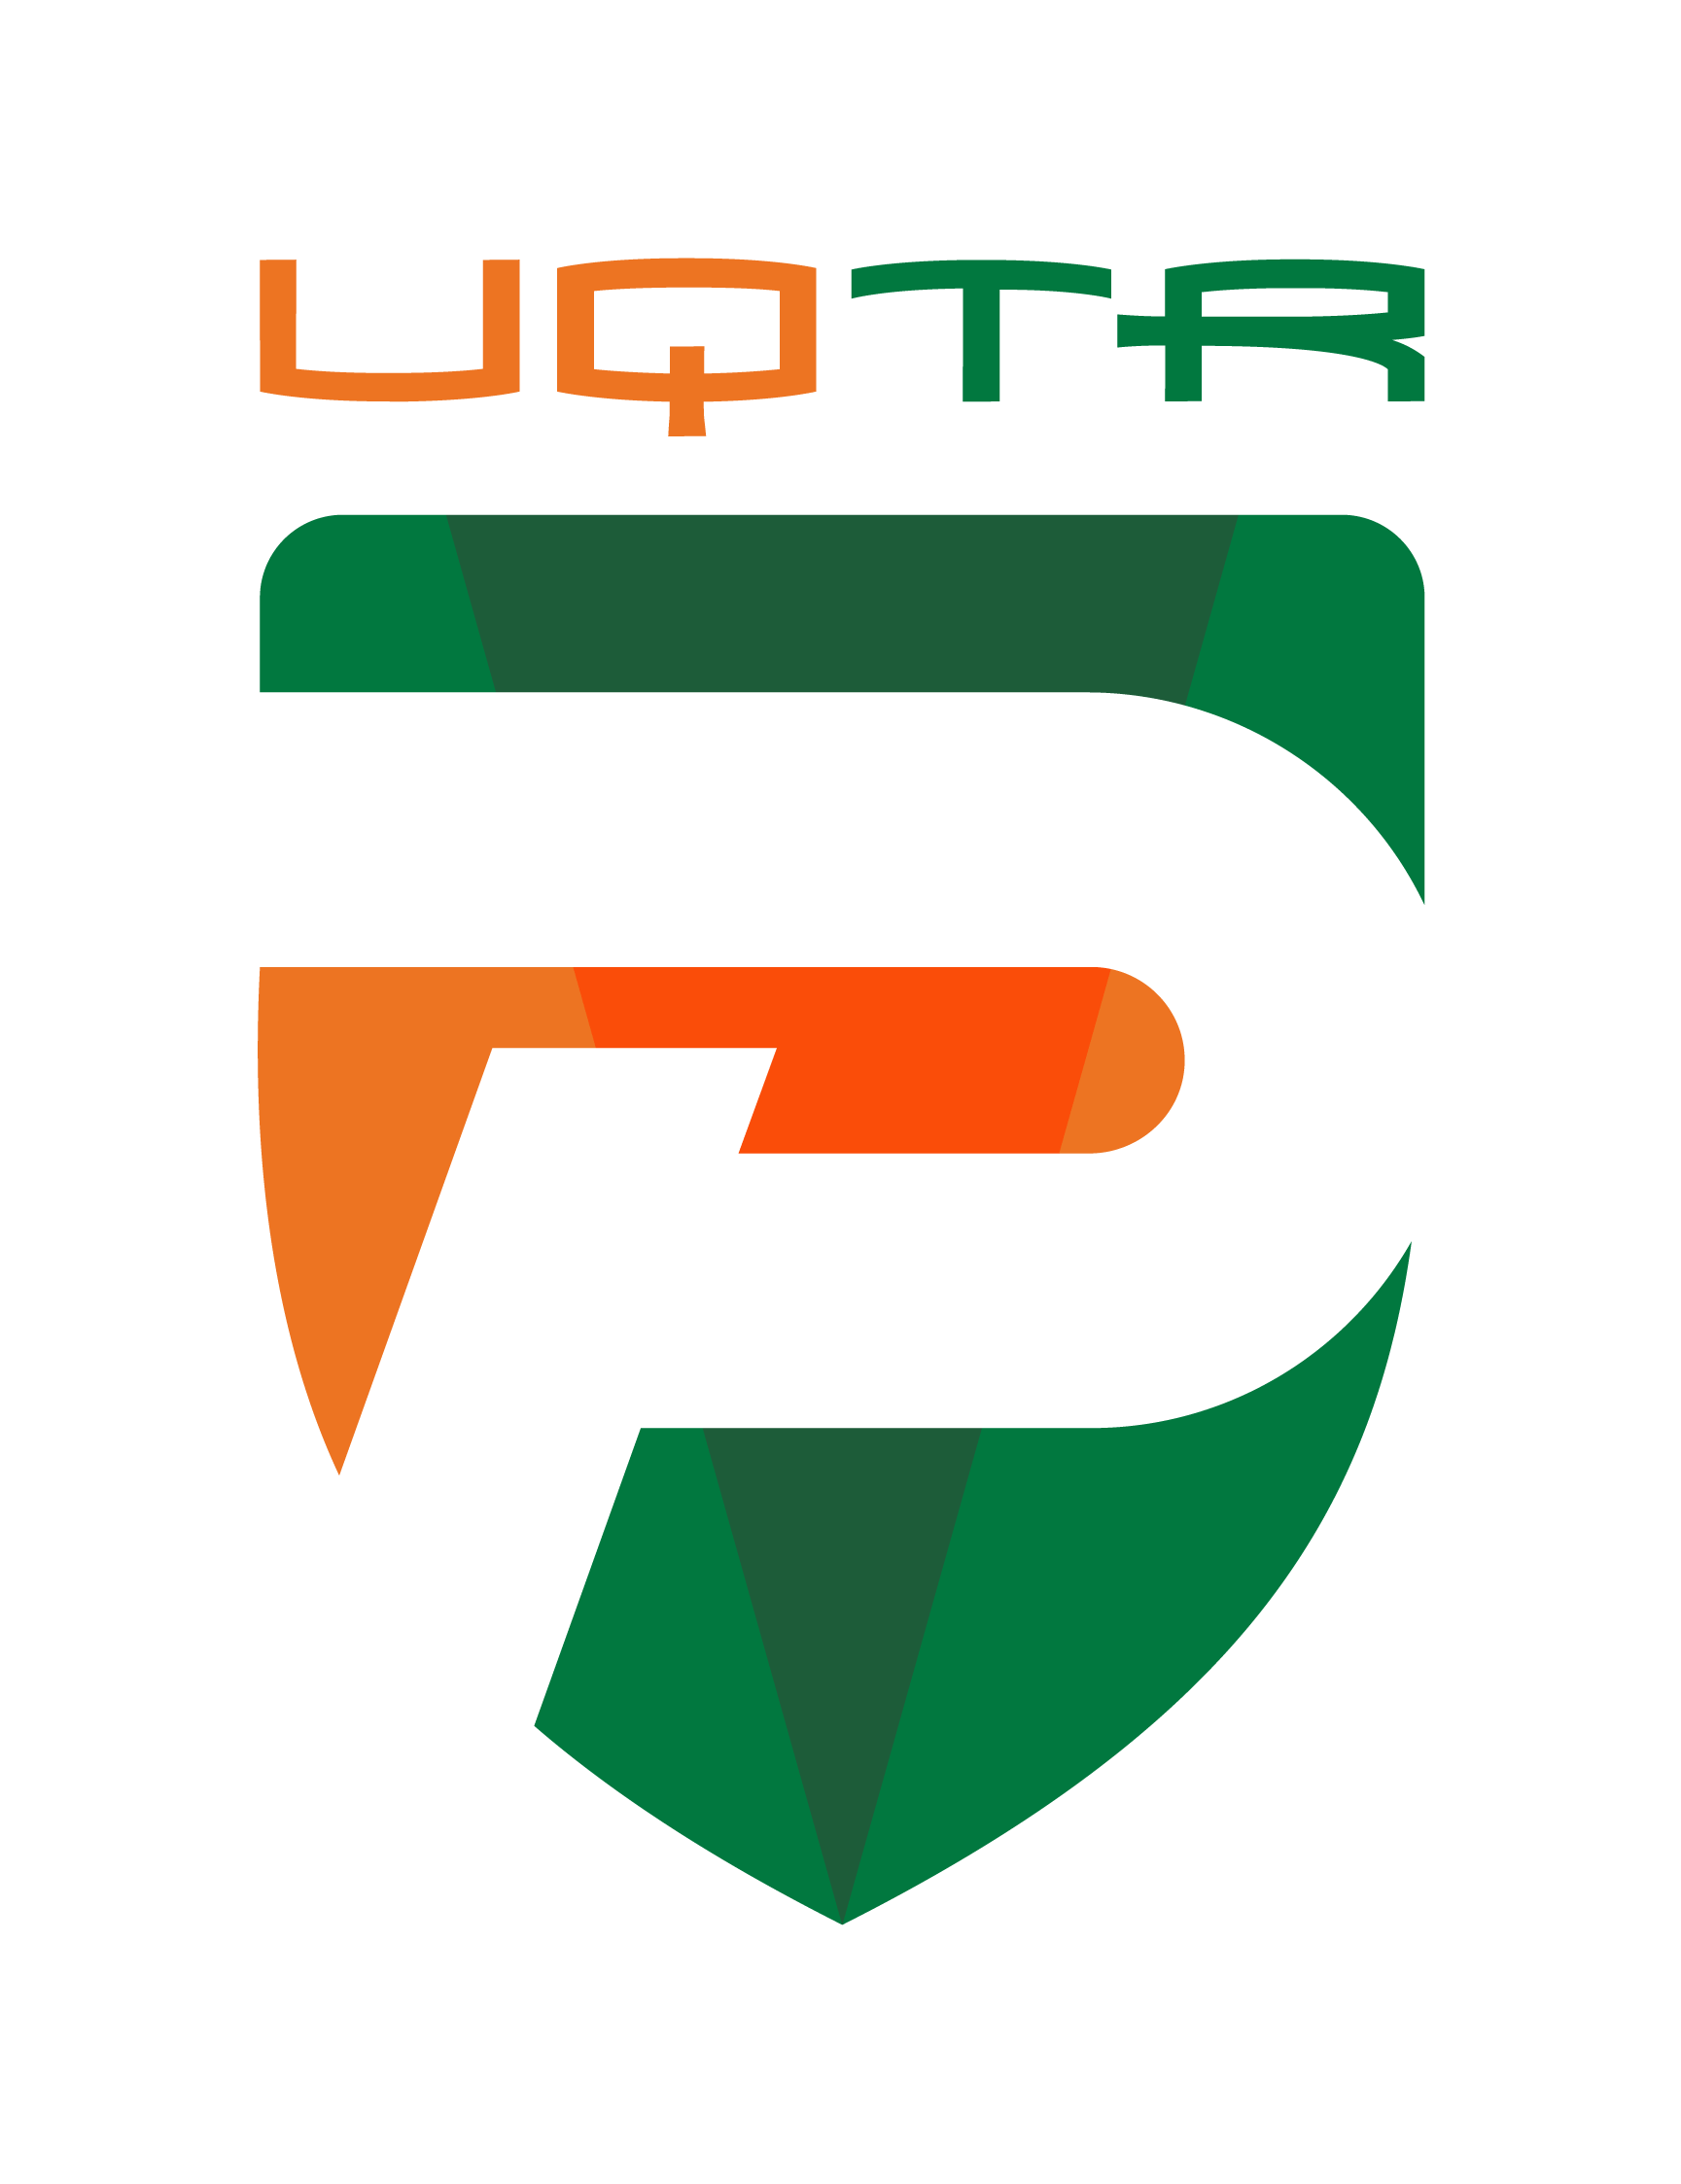 UQTR_New.png (22 KB)